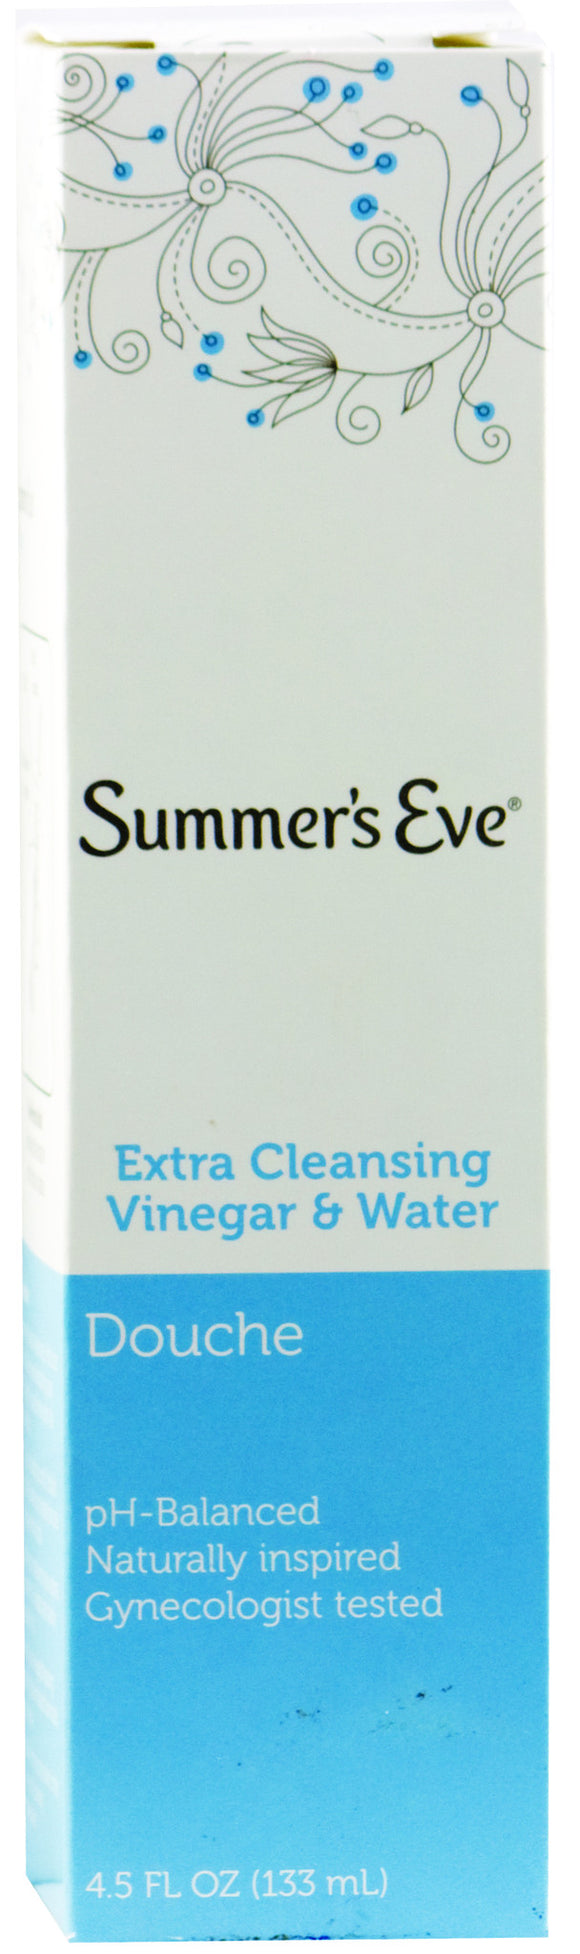 SUMMER'S EVE - EXTRA CLEANSING